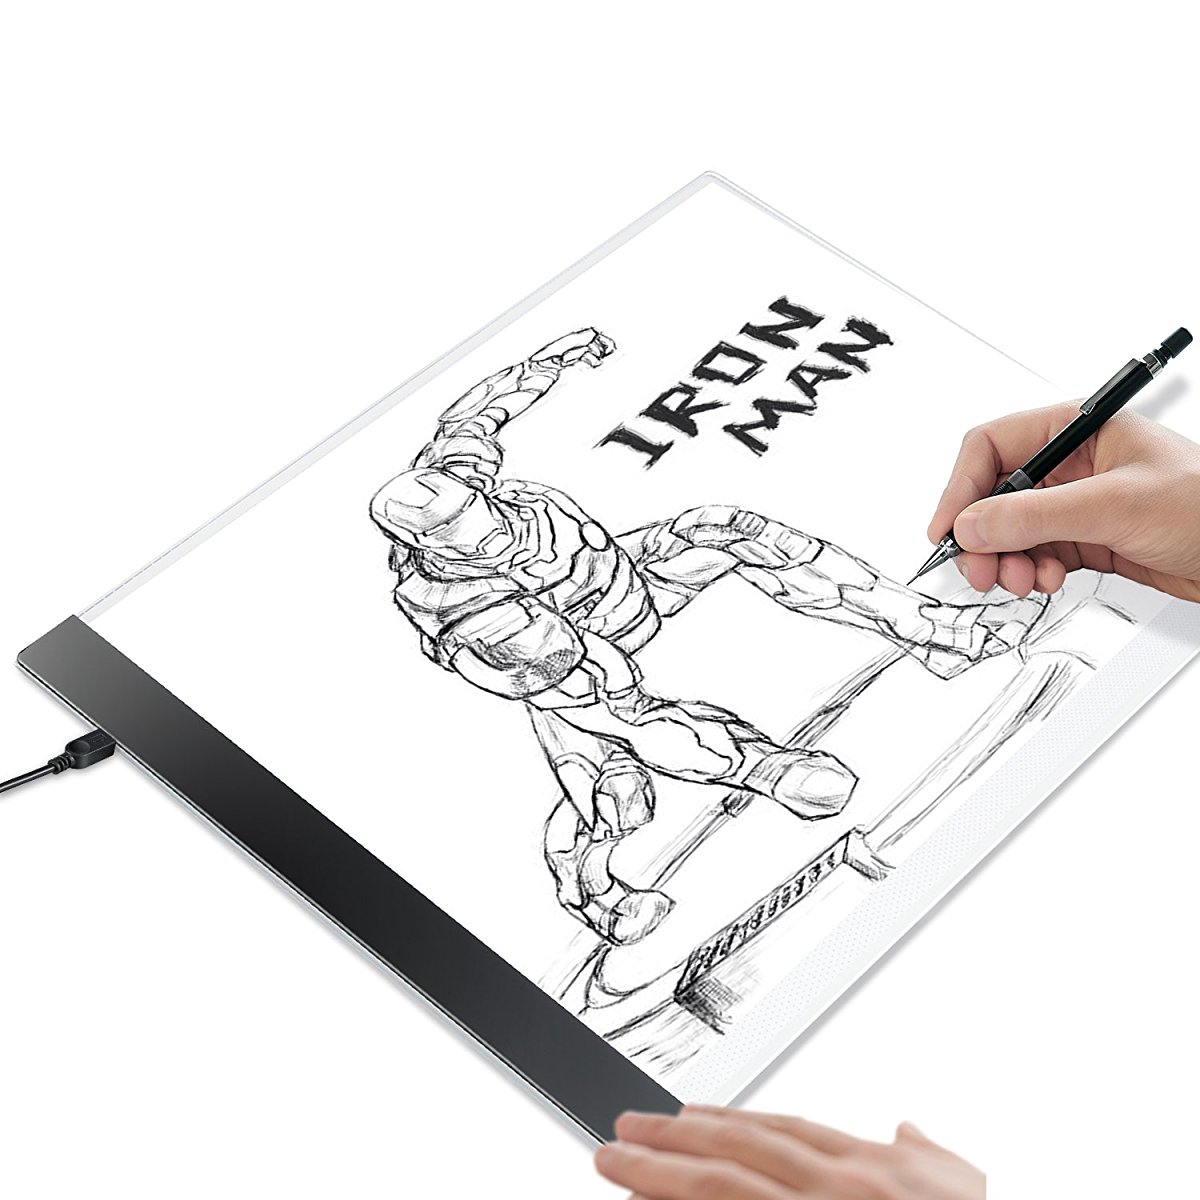 The Best Free Tracing Drawing Images Download From 339